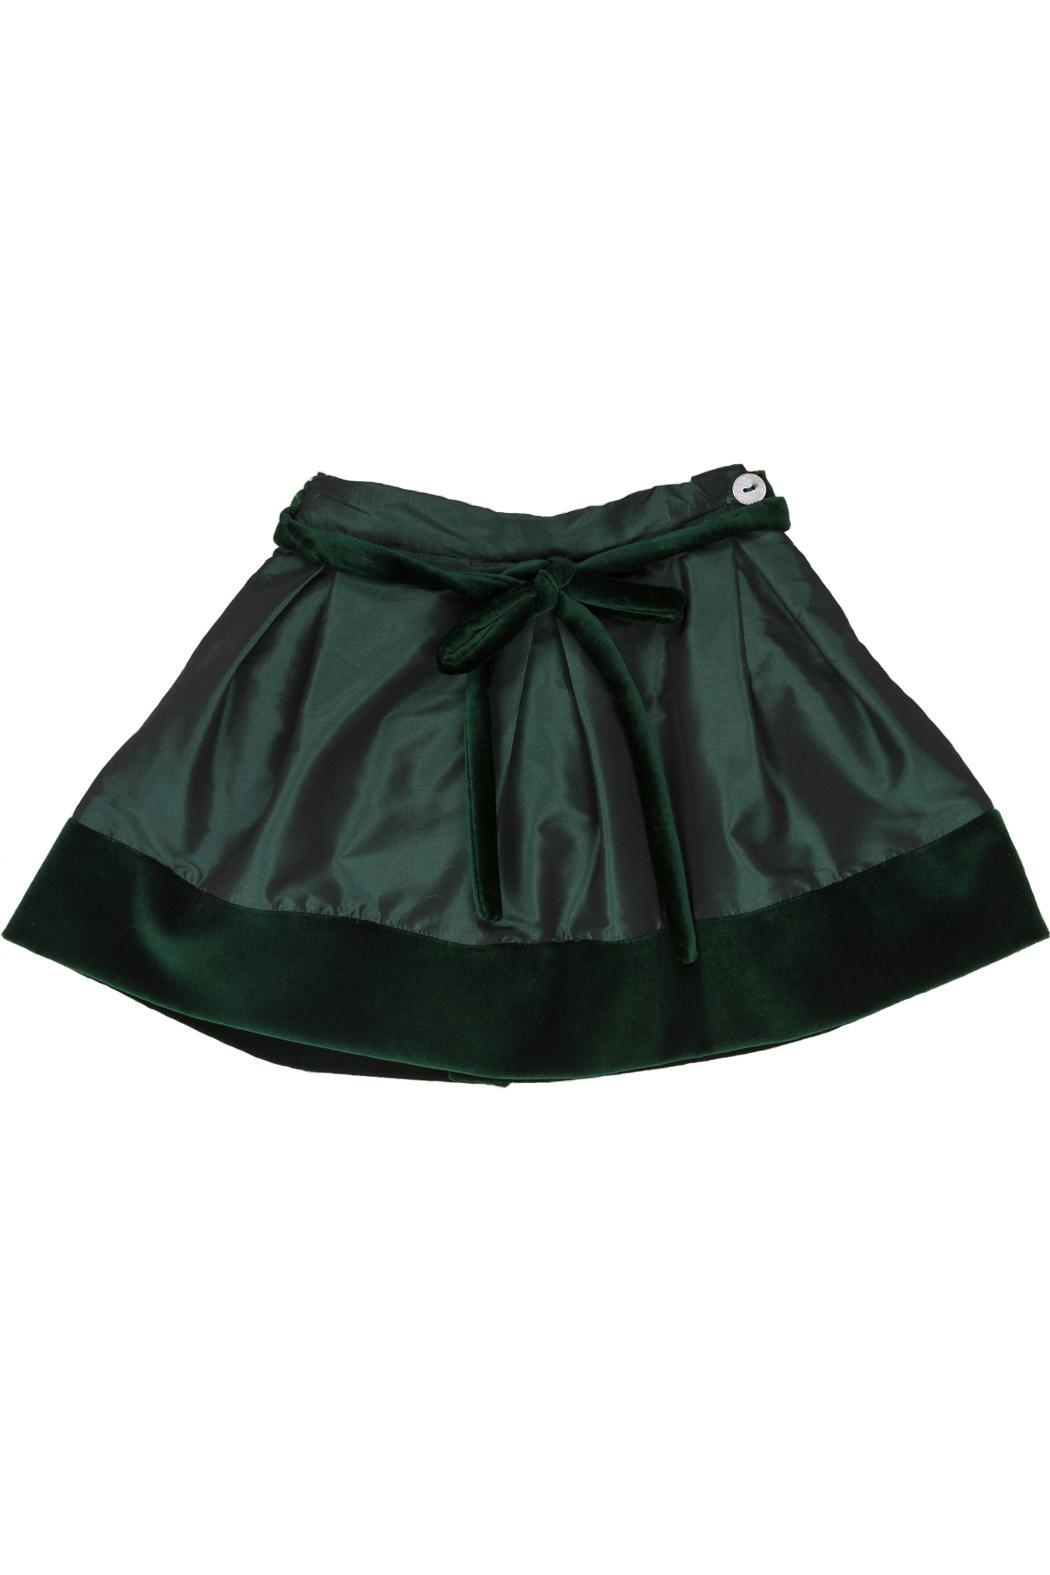 Malvi & Co. Emerald Taffeta Skirt. - Main Image